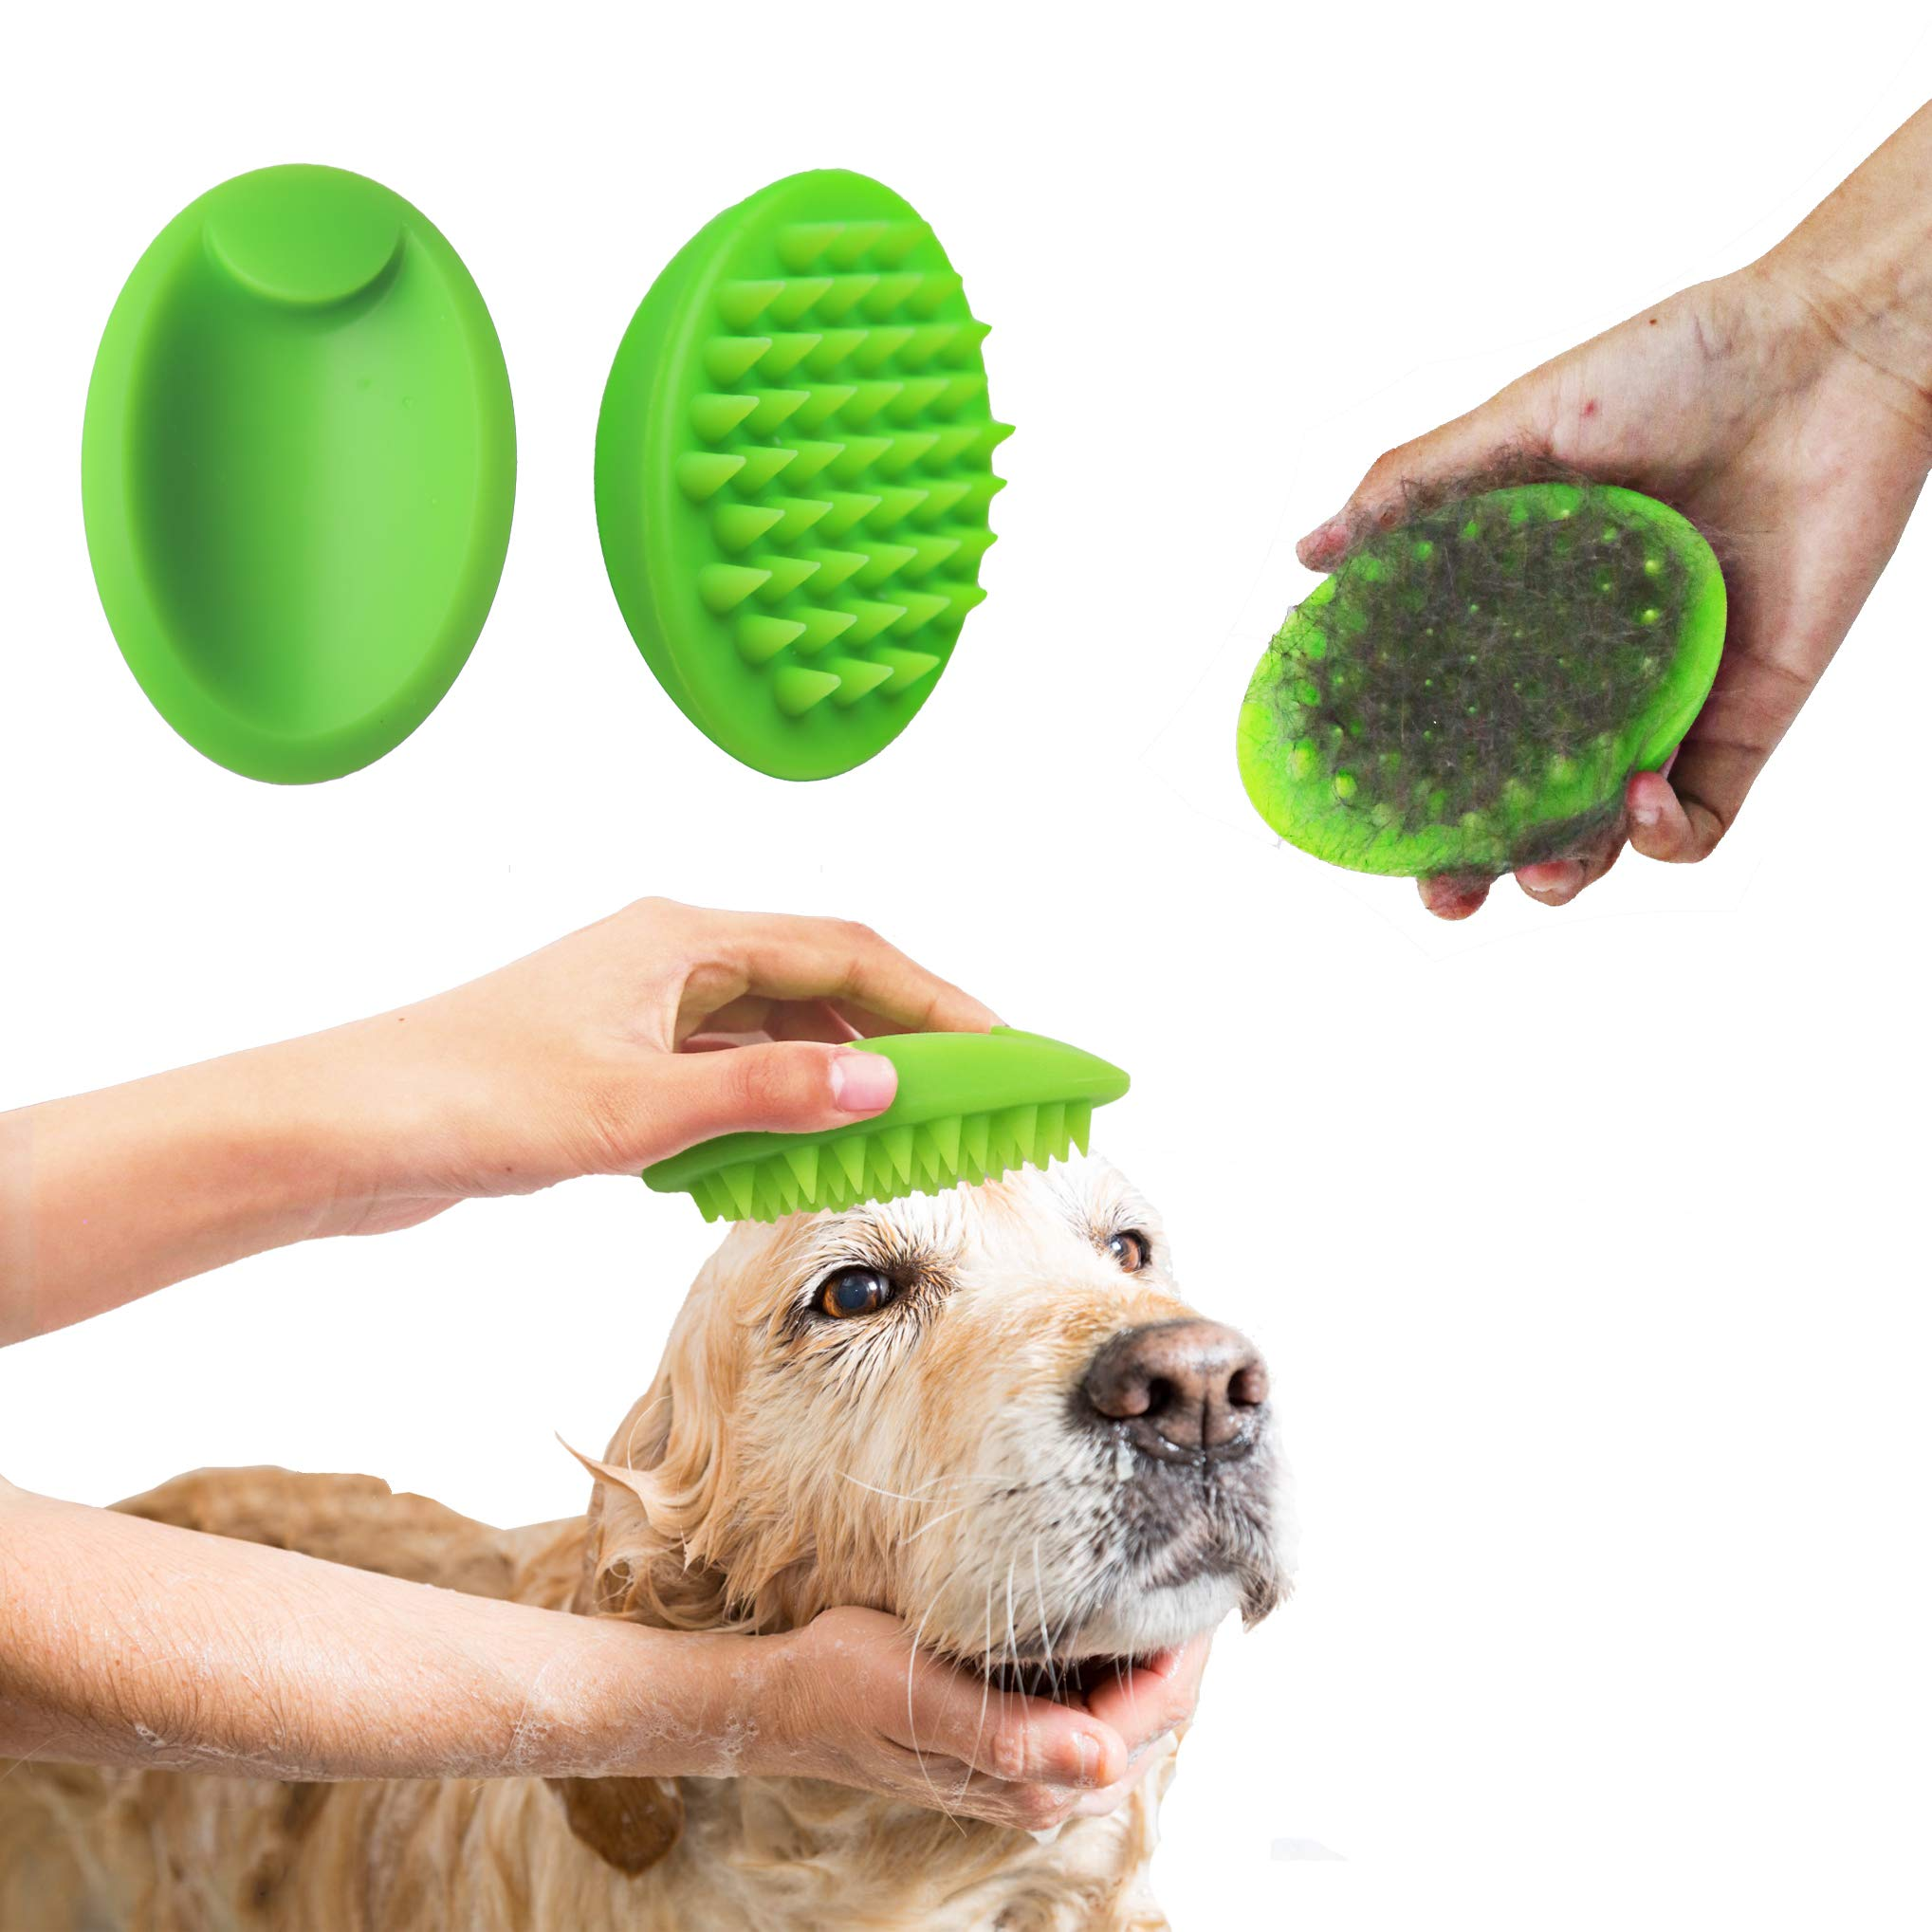 Blingbrione Cat&Dog Soft Silicone Deshedding Brush for Bath/Massaging/Grooming Pets, Loose Undercoat Remover/Skin Cleaner/Making Hair Gloss, Gently Comb Suitable for Short Long Hair pets.